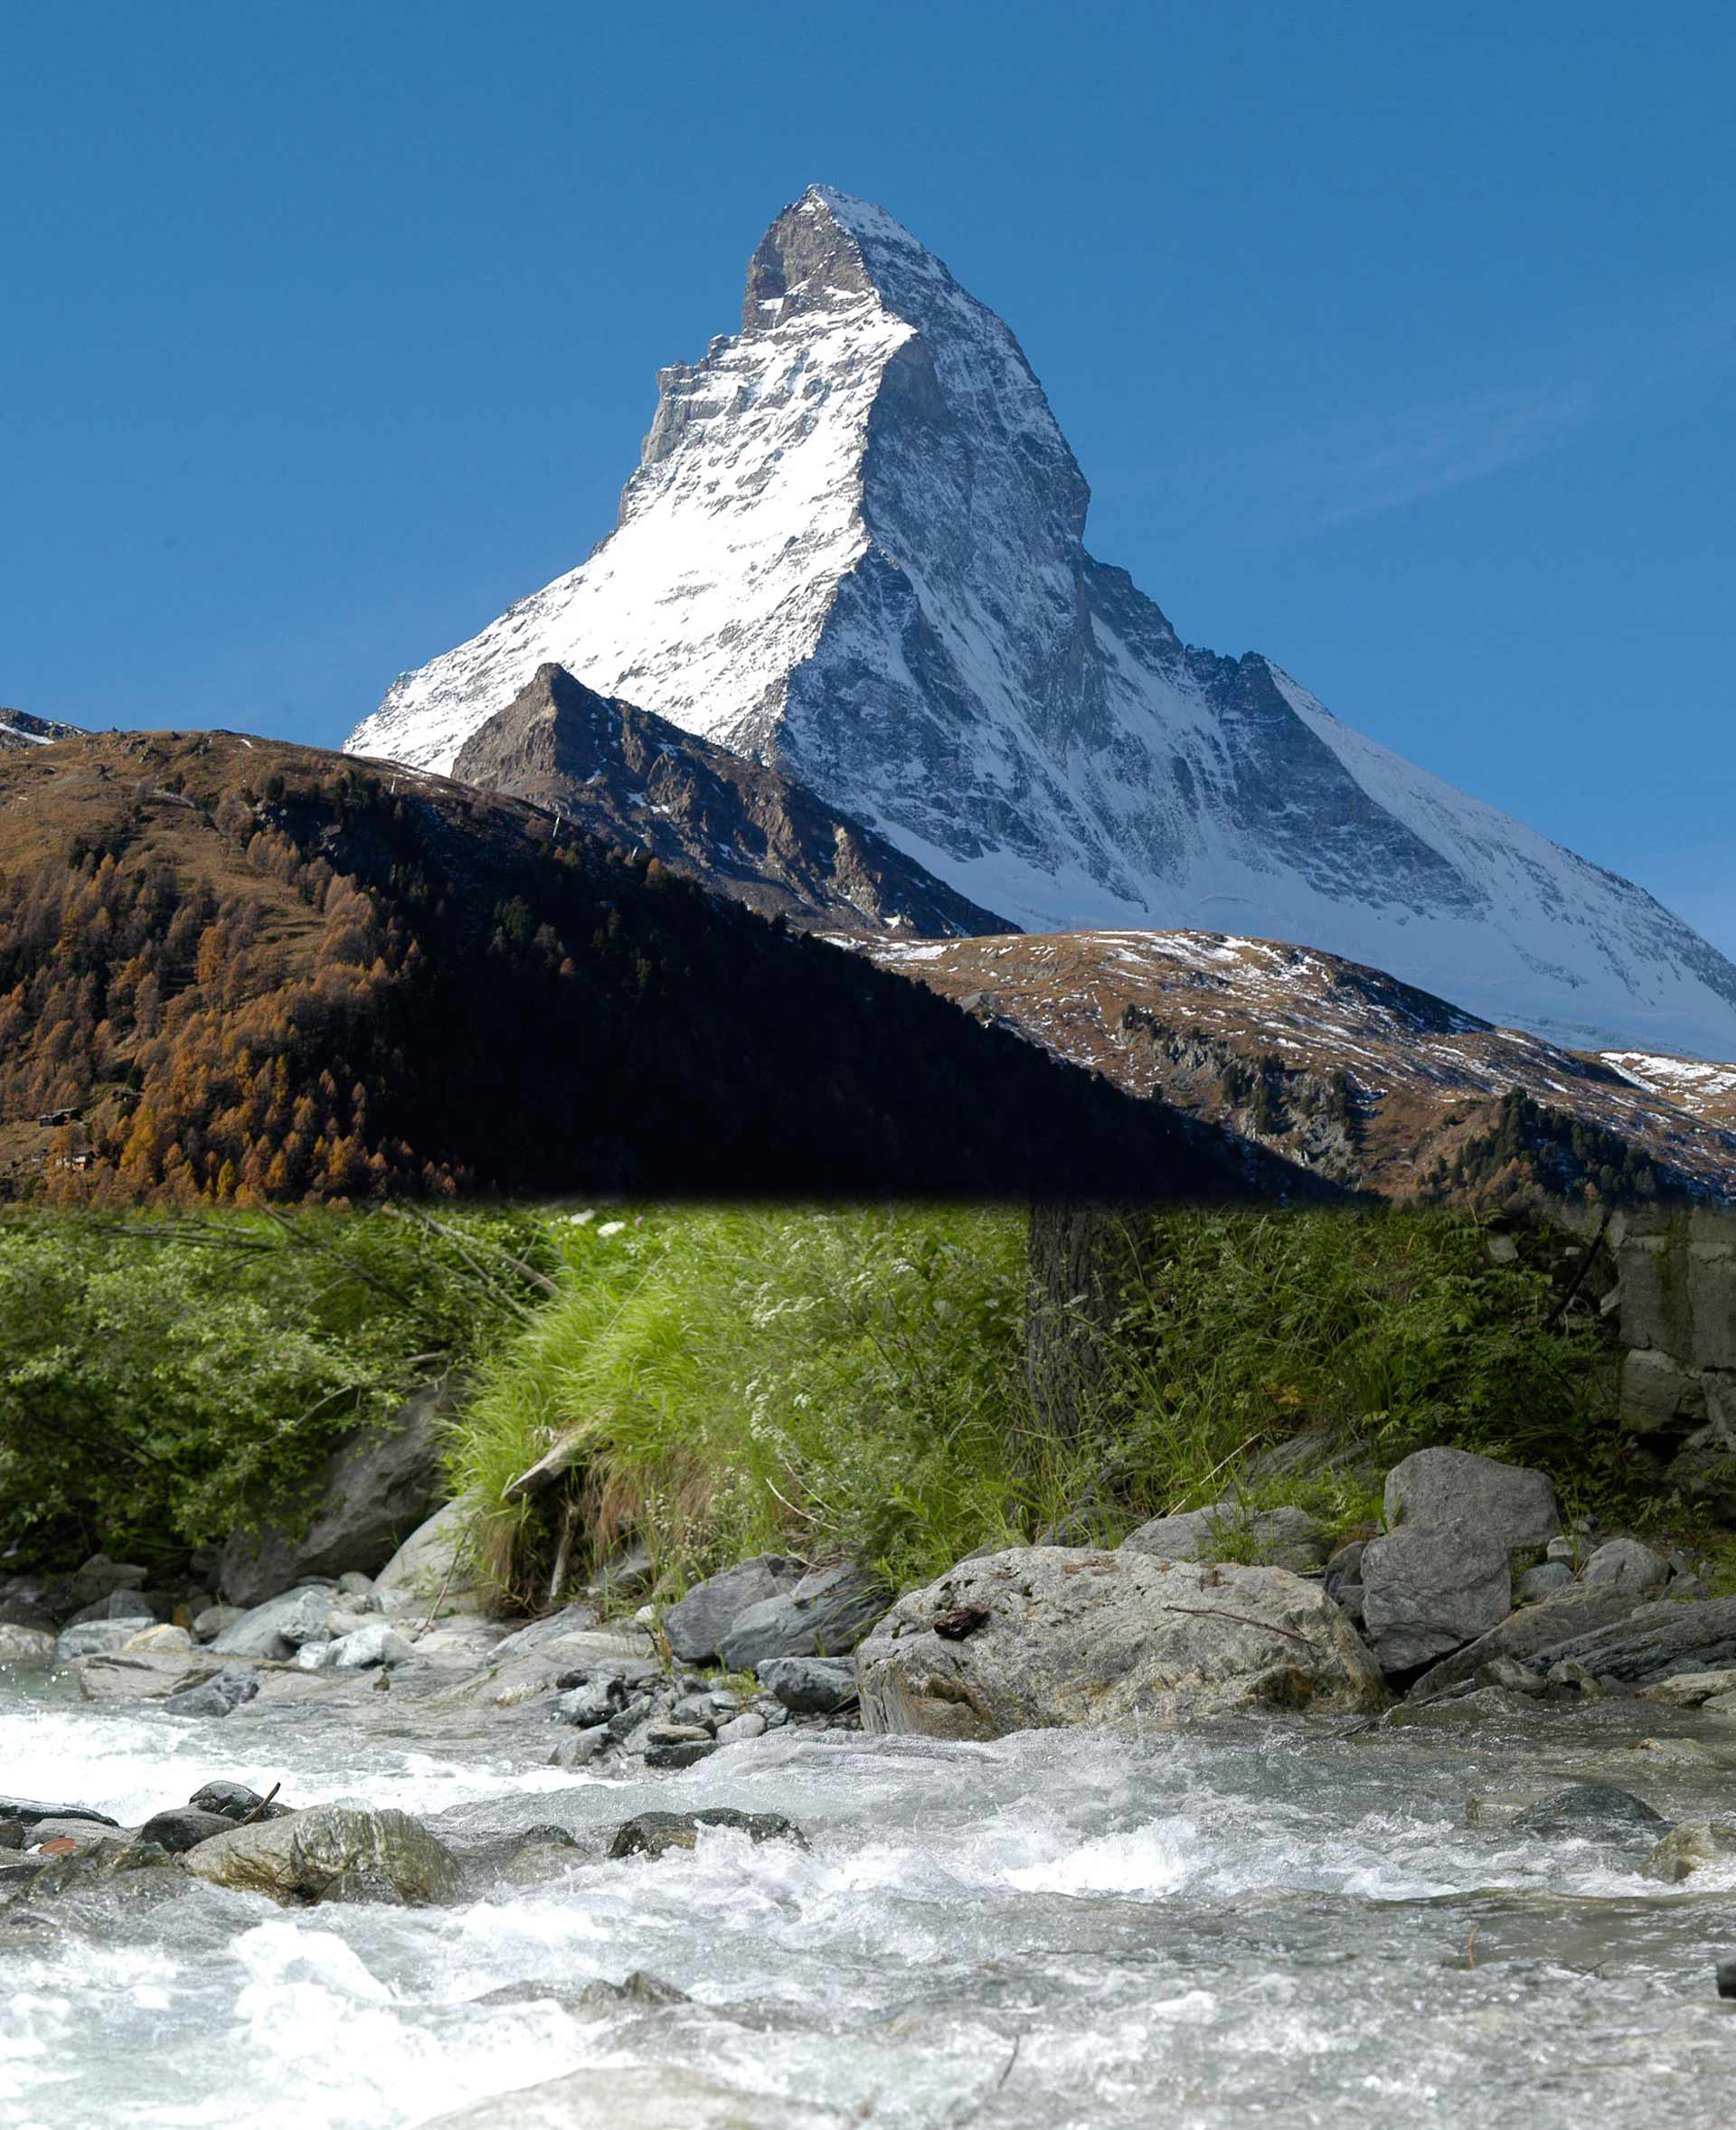 150 Years Since the First Ascent of the Matterhorn The Matterhorn will be celebrated in 2015. 150 years ago, on 14 July 1865, the first people stood on the summit. This is what is being celebrated – with the reopening of the Hörnlihütte, the Open-Air Theatre, an Epoch Week in July and many, many other festivities.